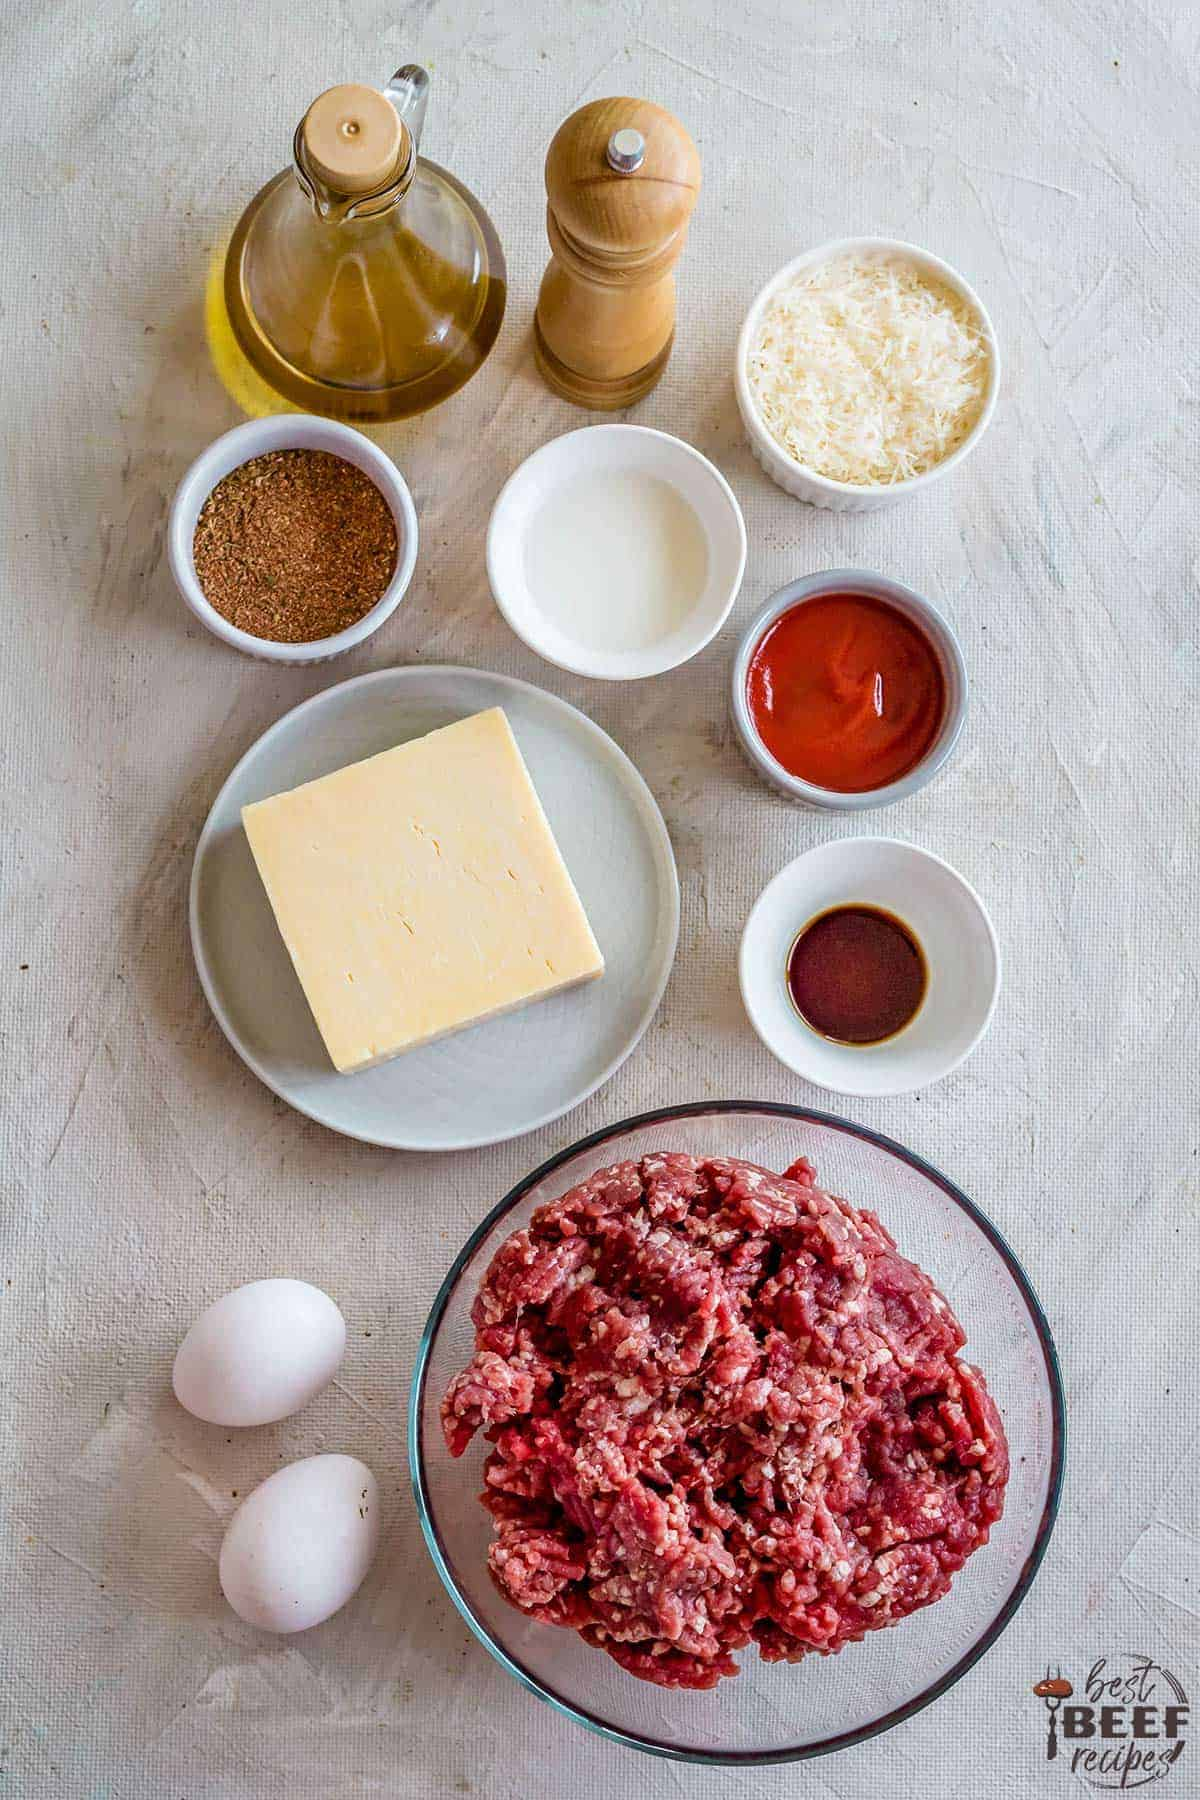 Ingredients for keto meatloaf in bowls and on plates